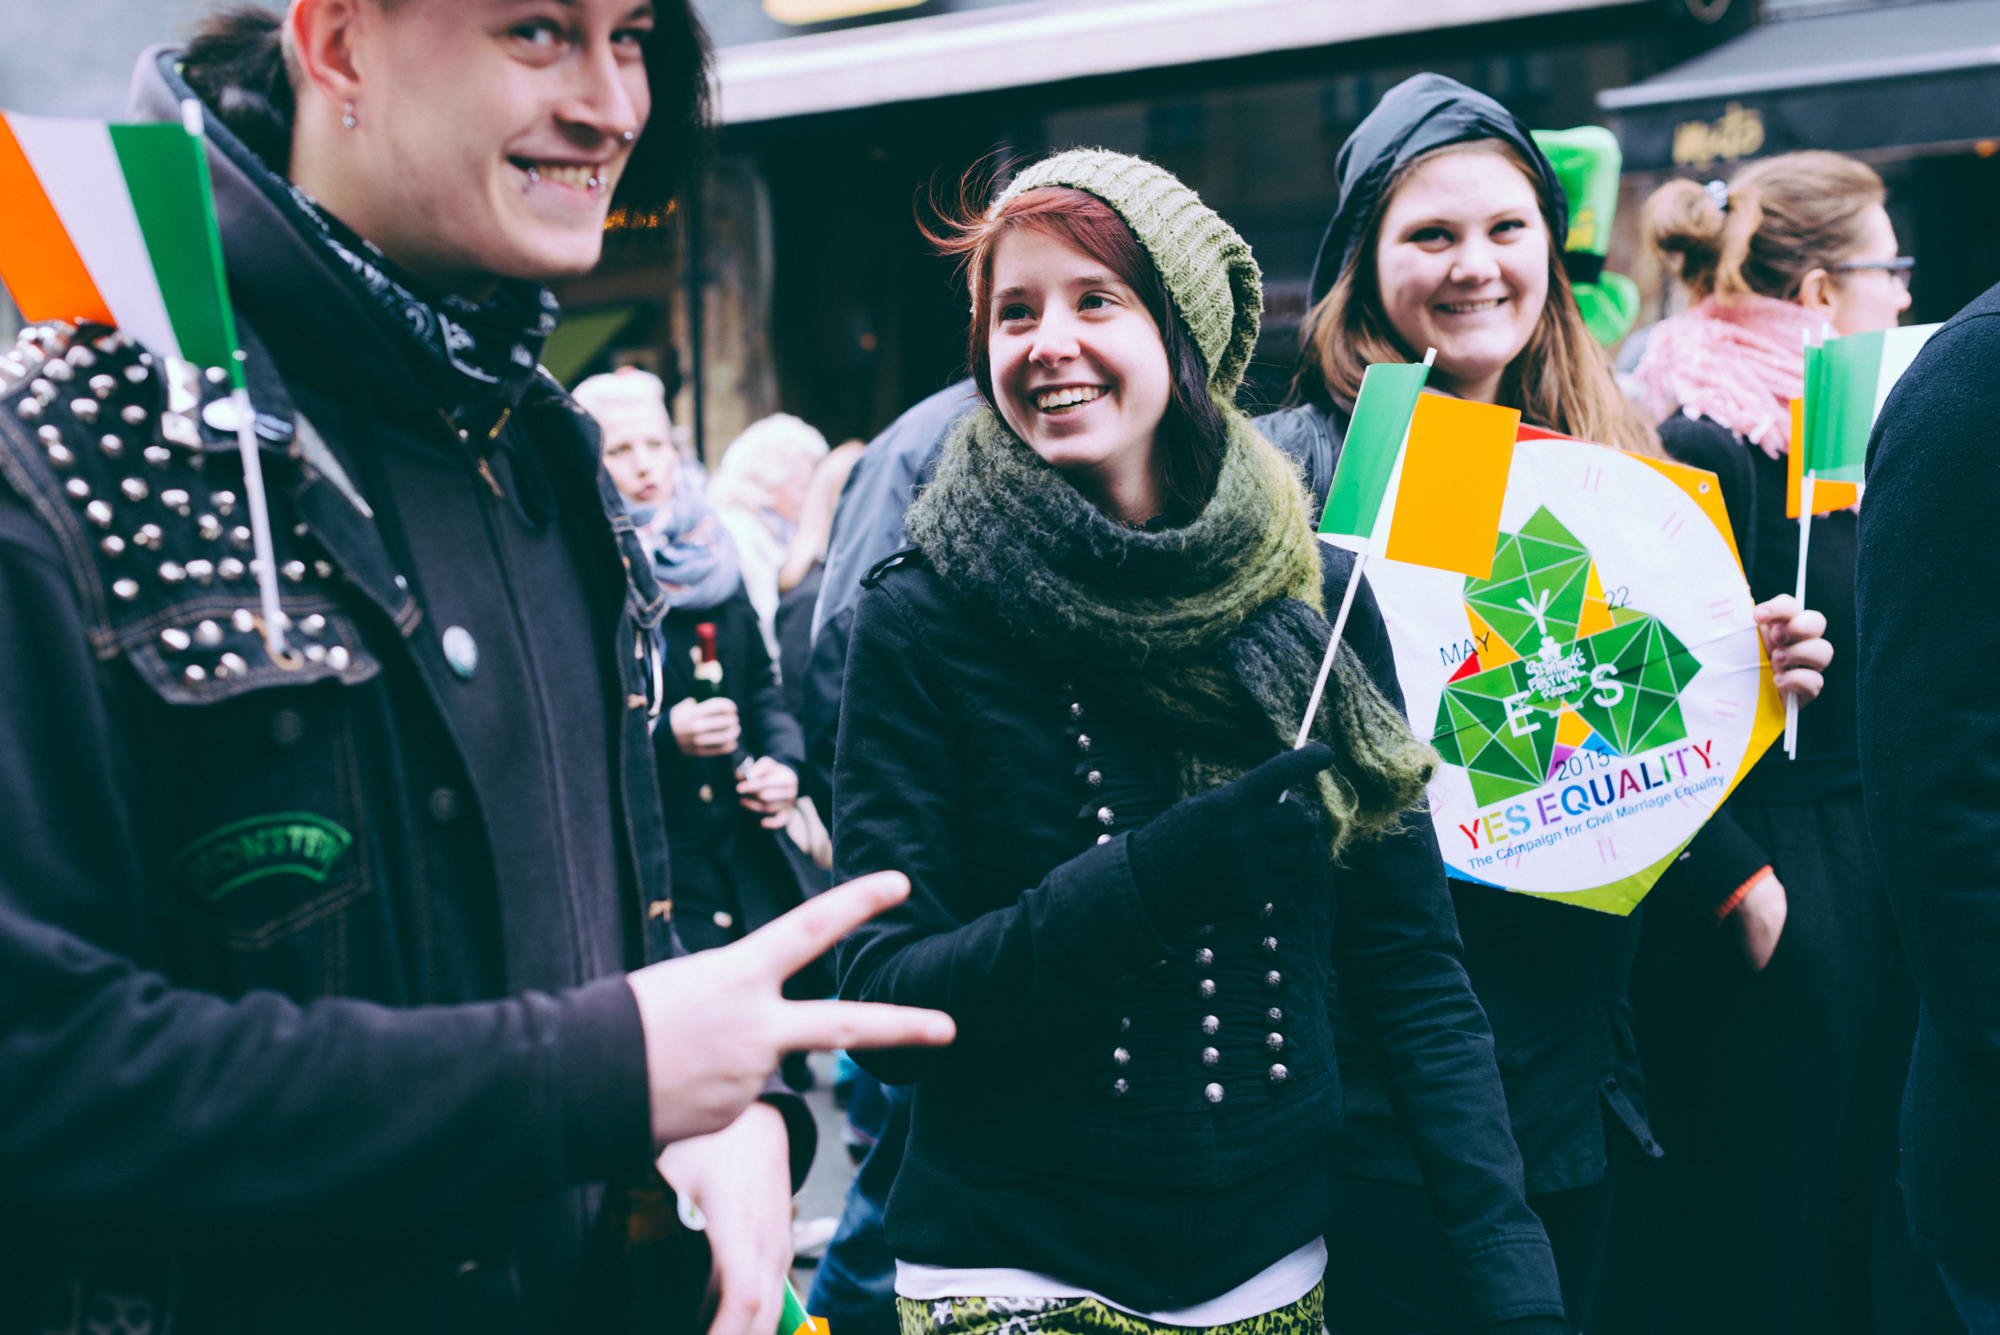 st-patricks-day-berlin-©-camille-blake-27.jpg